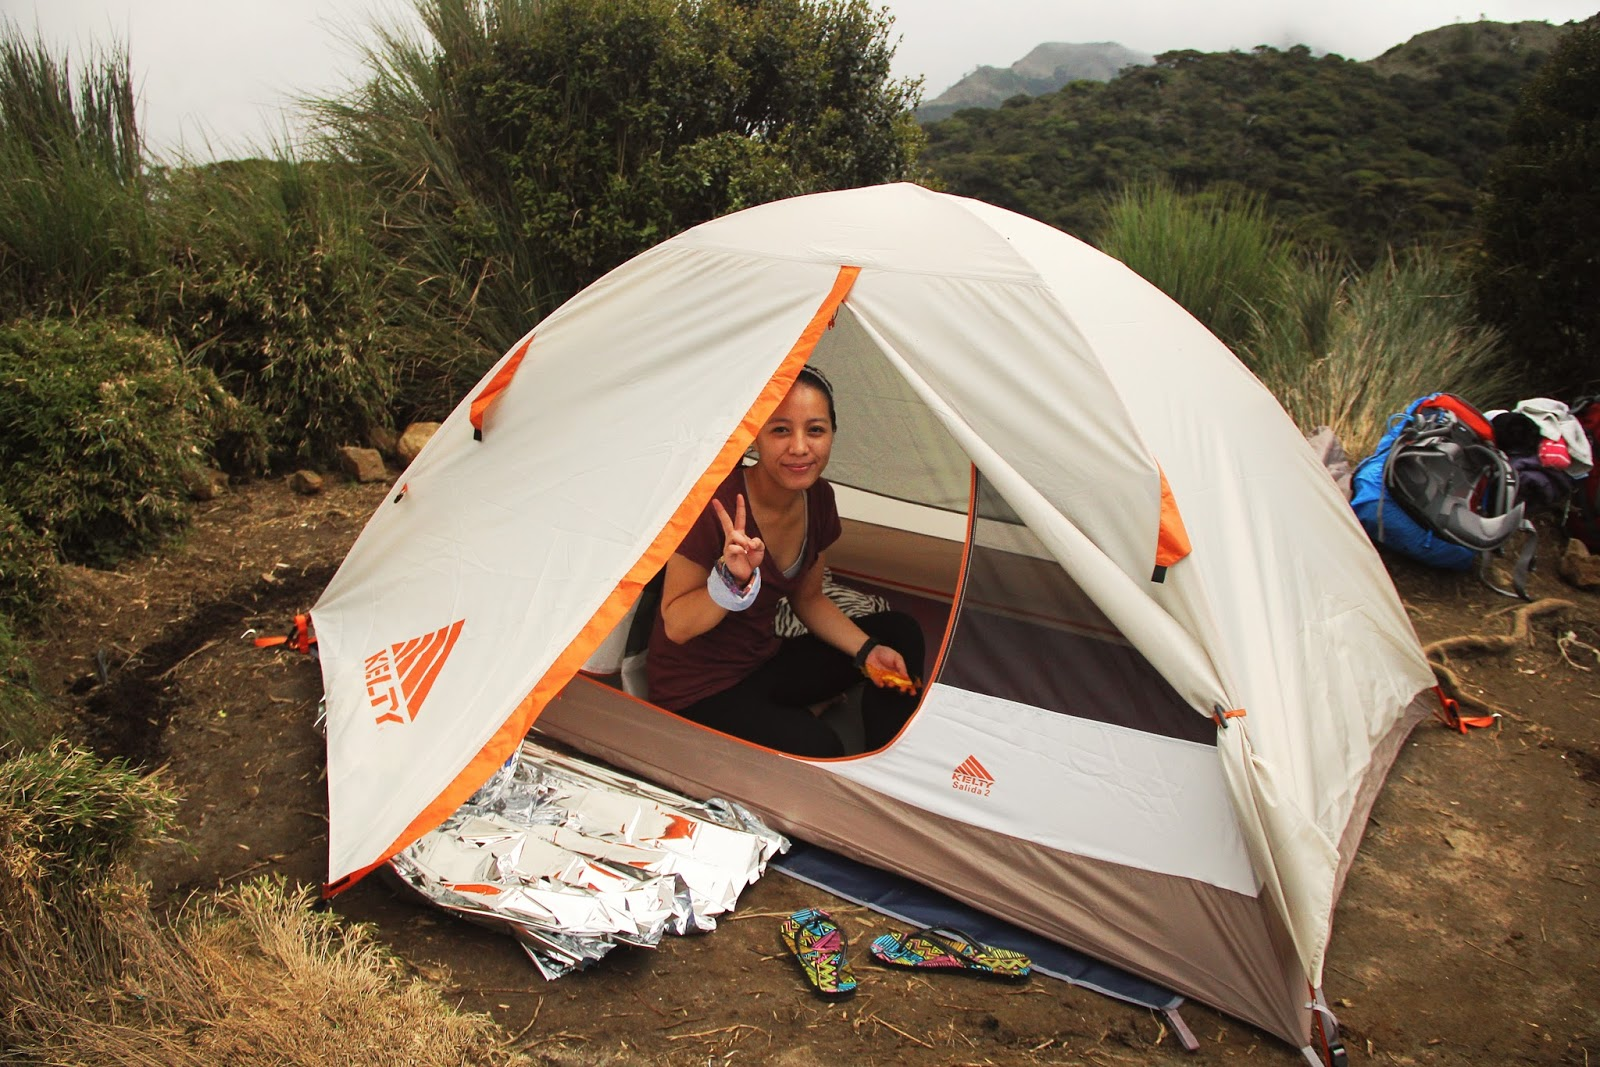 (Kelty Salida 2 2 person tent but can fit 3 person nicely.)  sc 1 st  shutterdose & shutterdose: May 2015